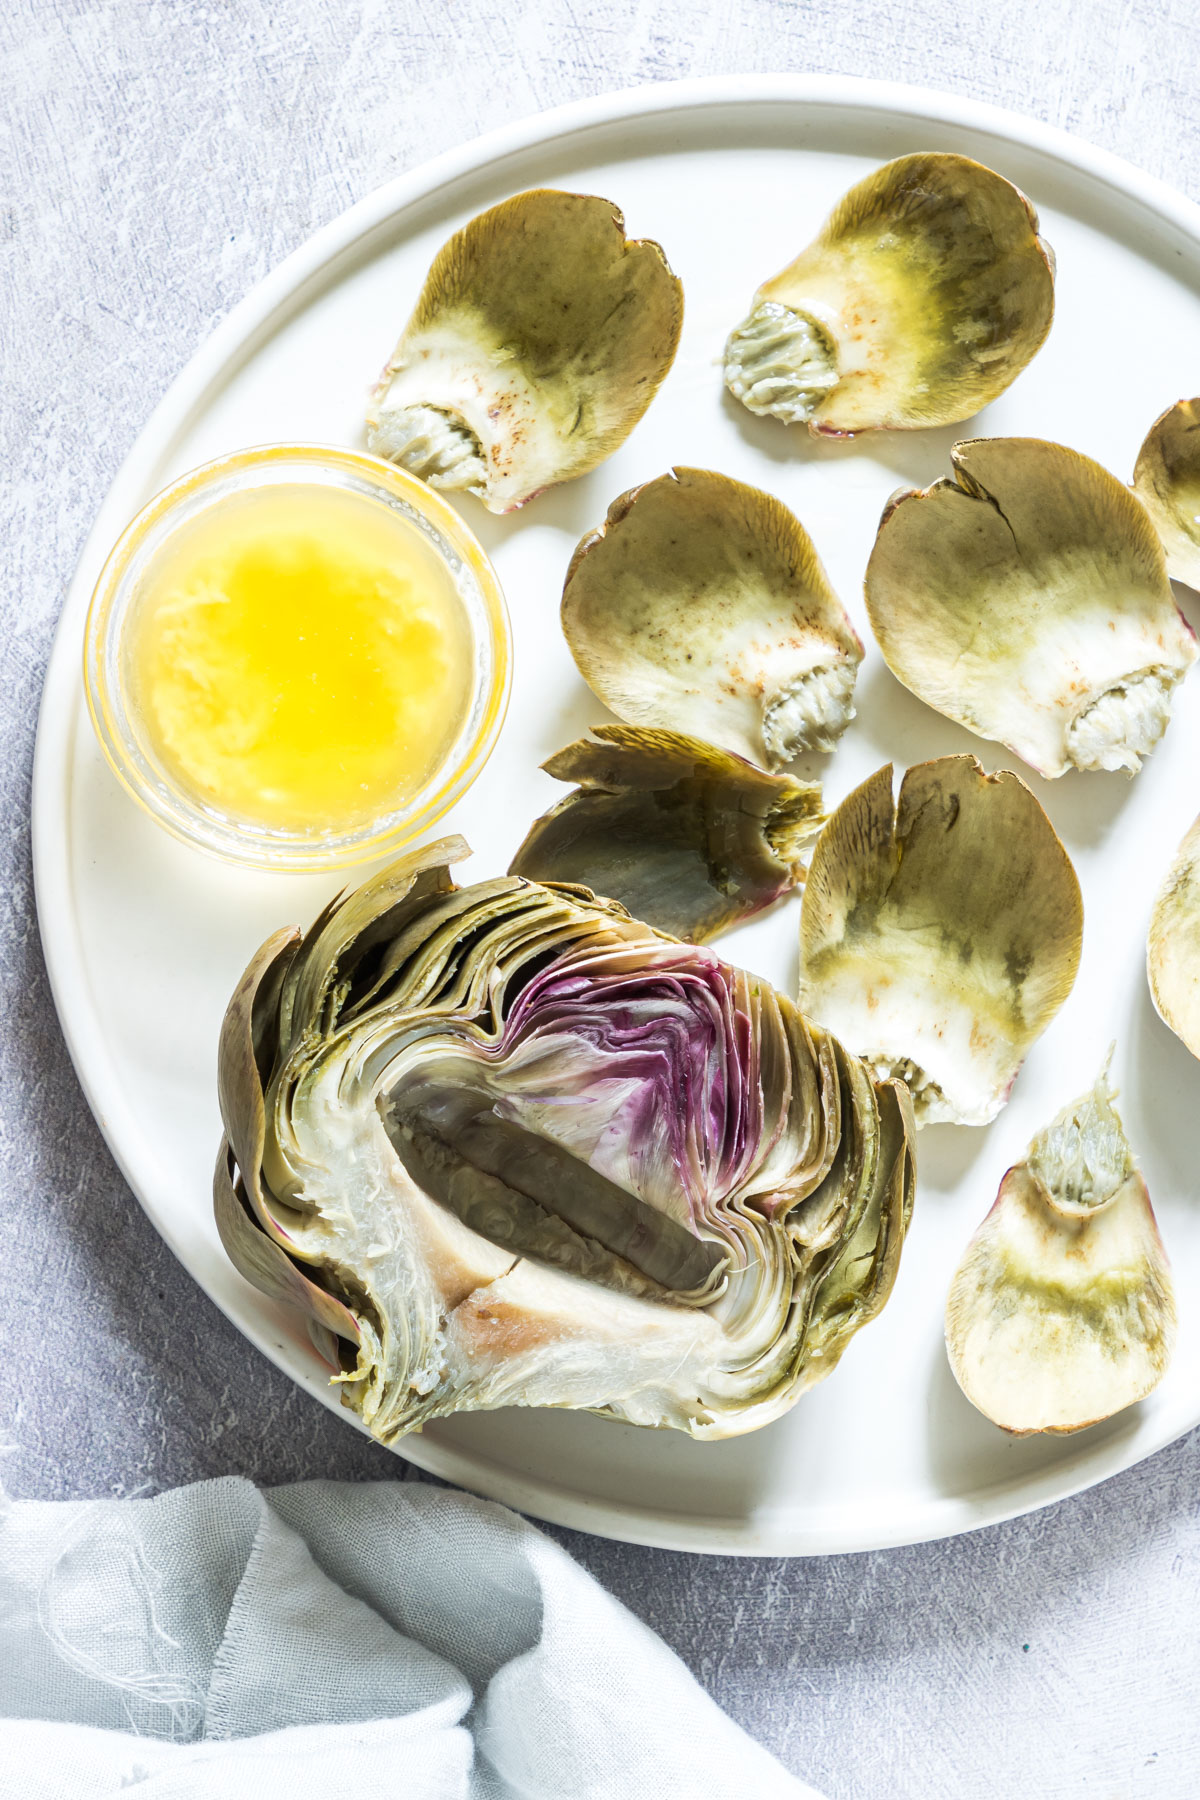 the cooked artichokes cut in half and served with butter sauce